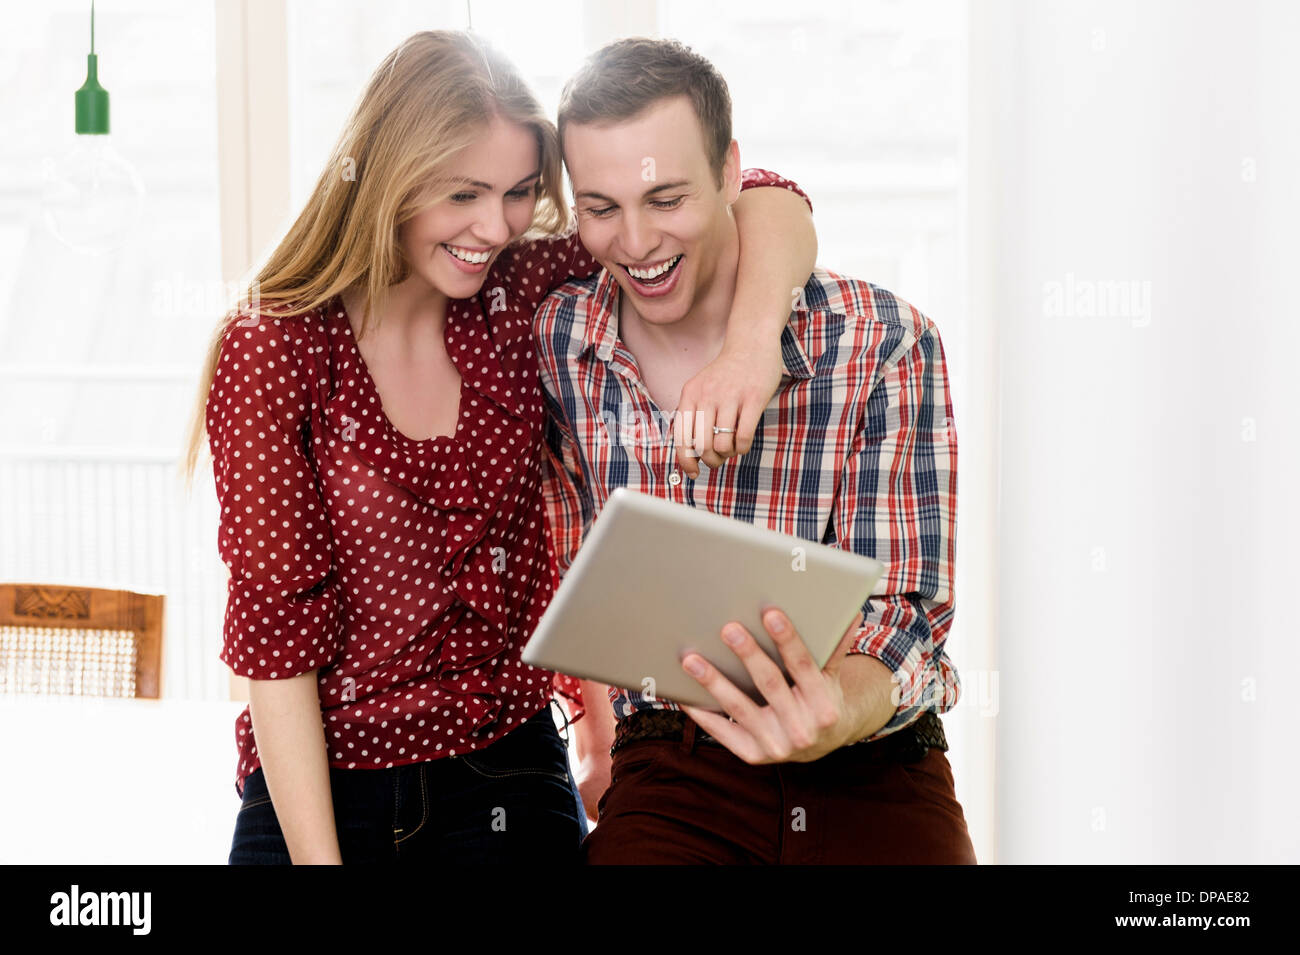 Couple on video chat using digital tablet - Stock Image